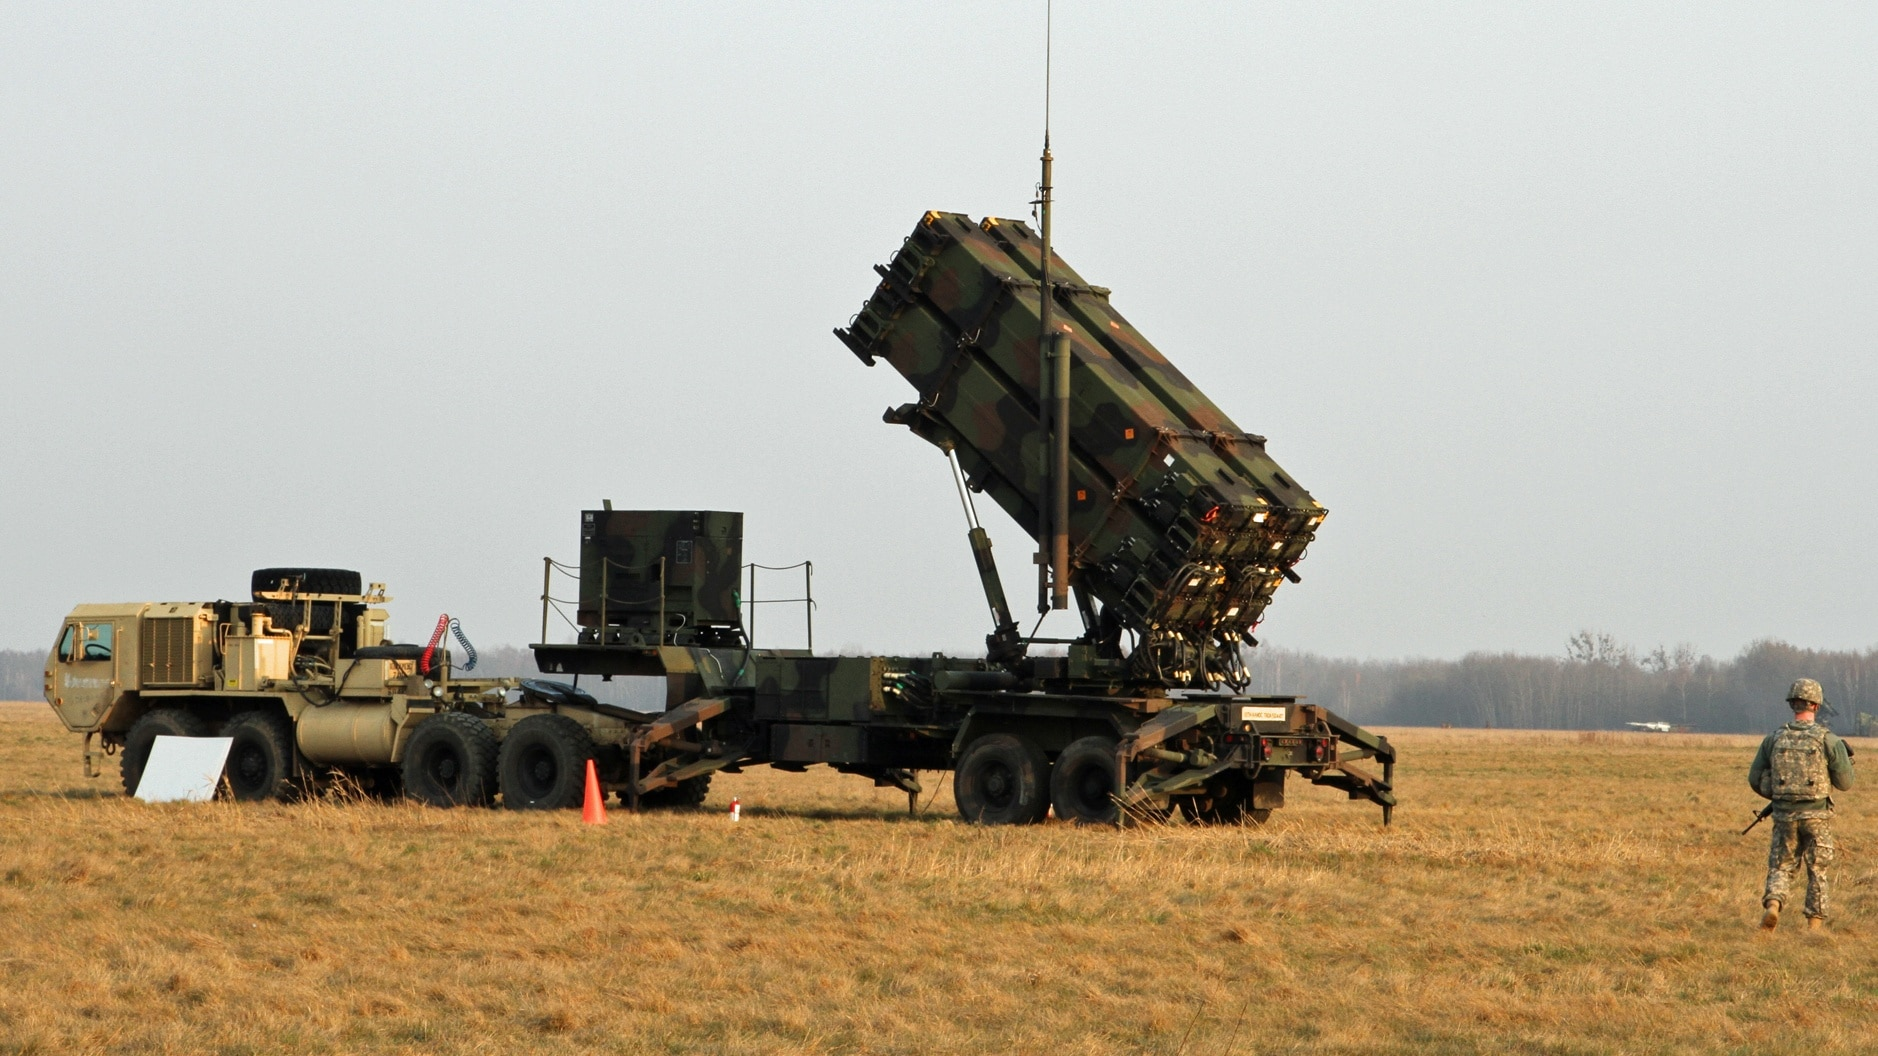 Patriot missiles deployed in NATO exercises in Baltics